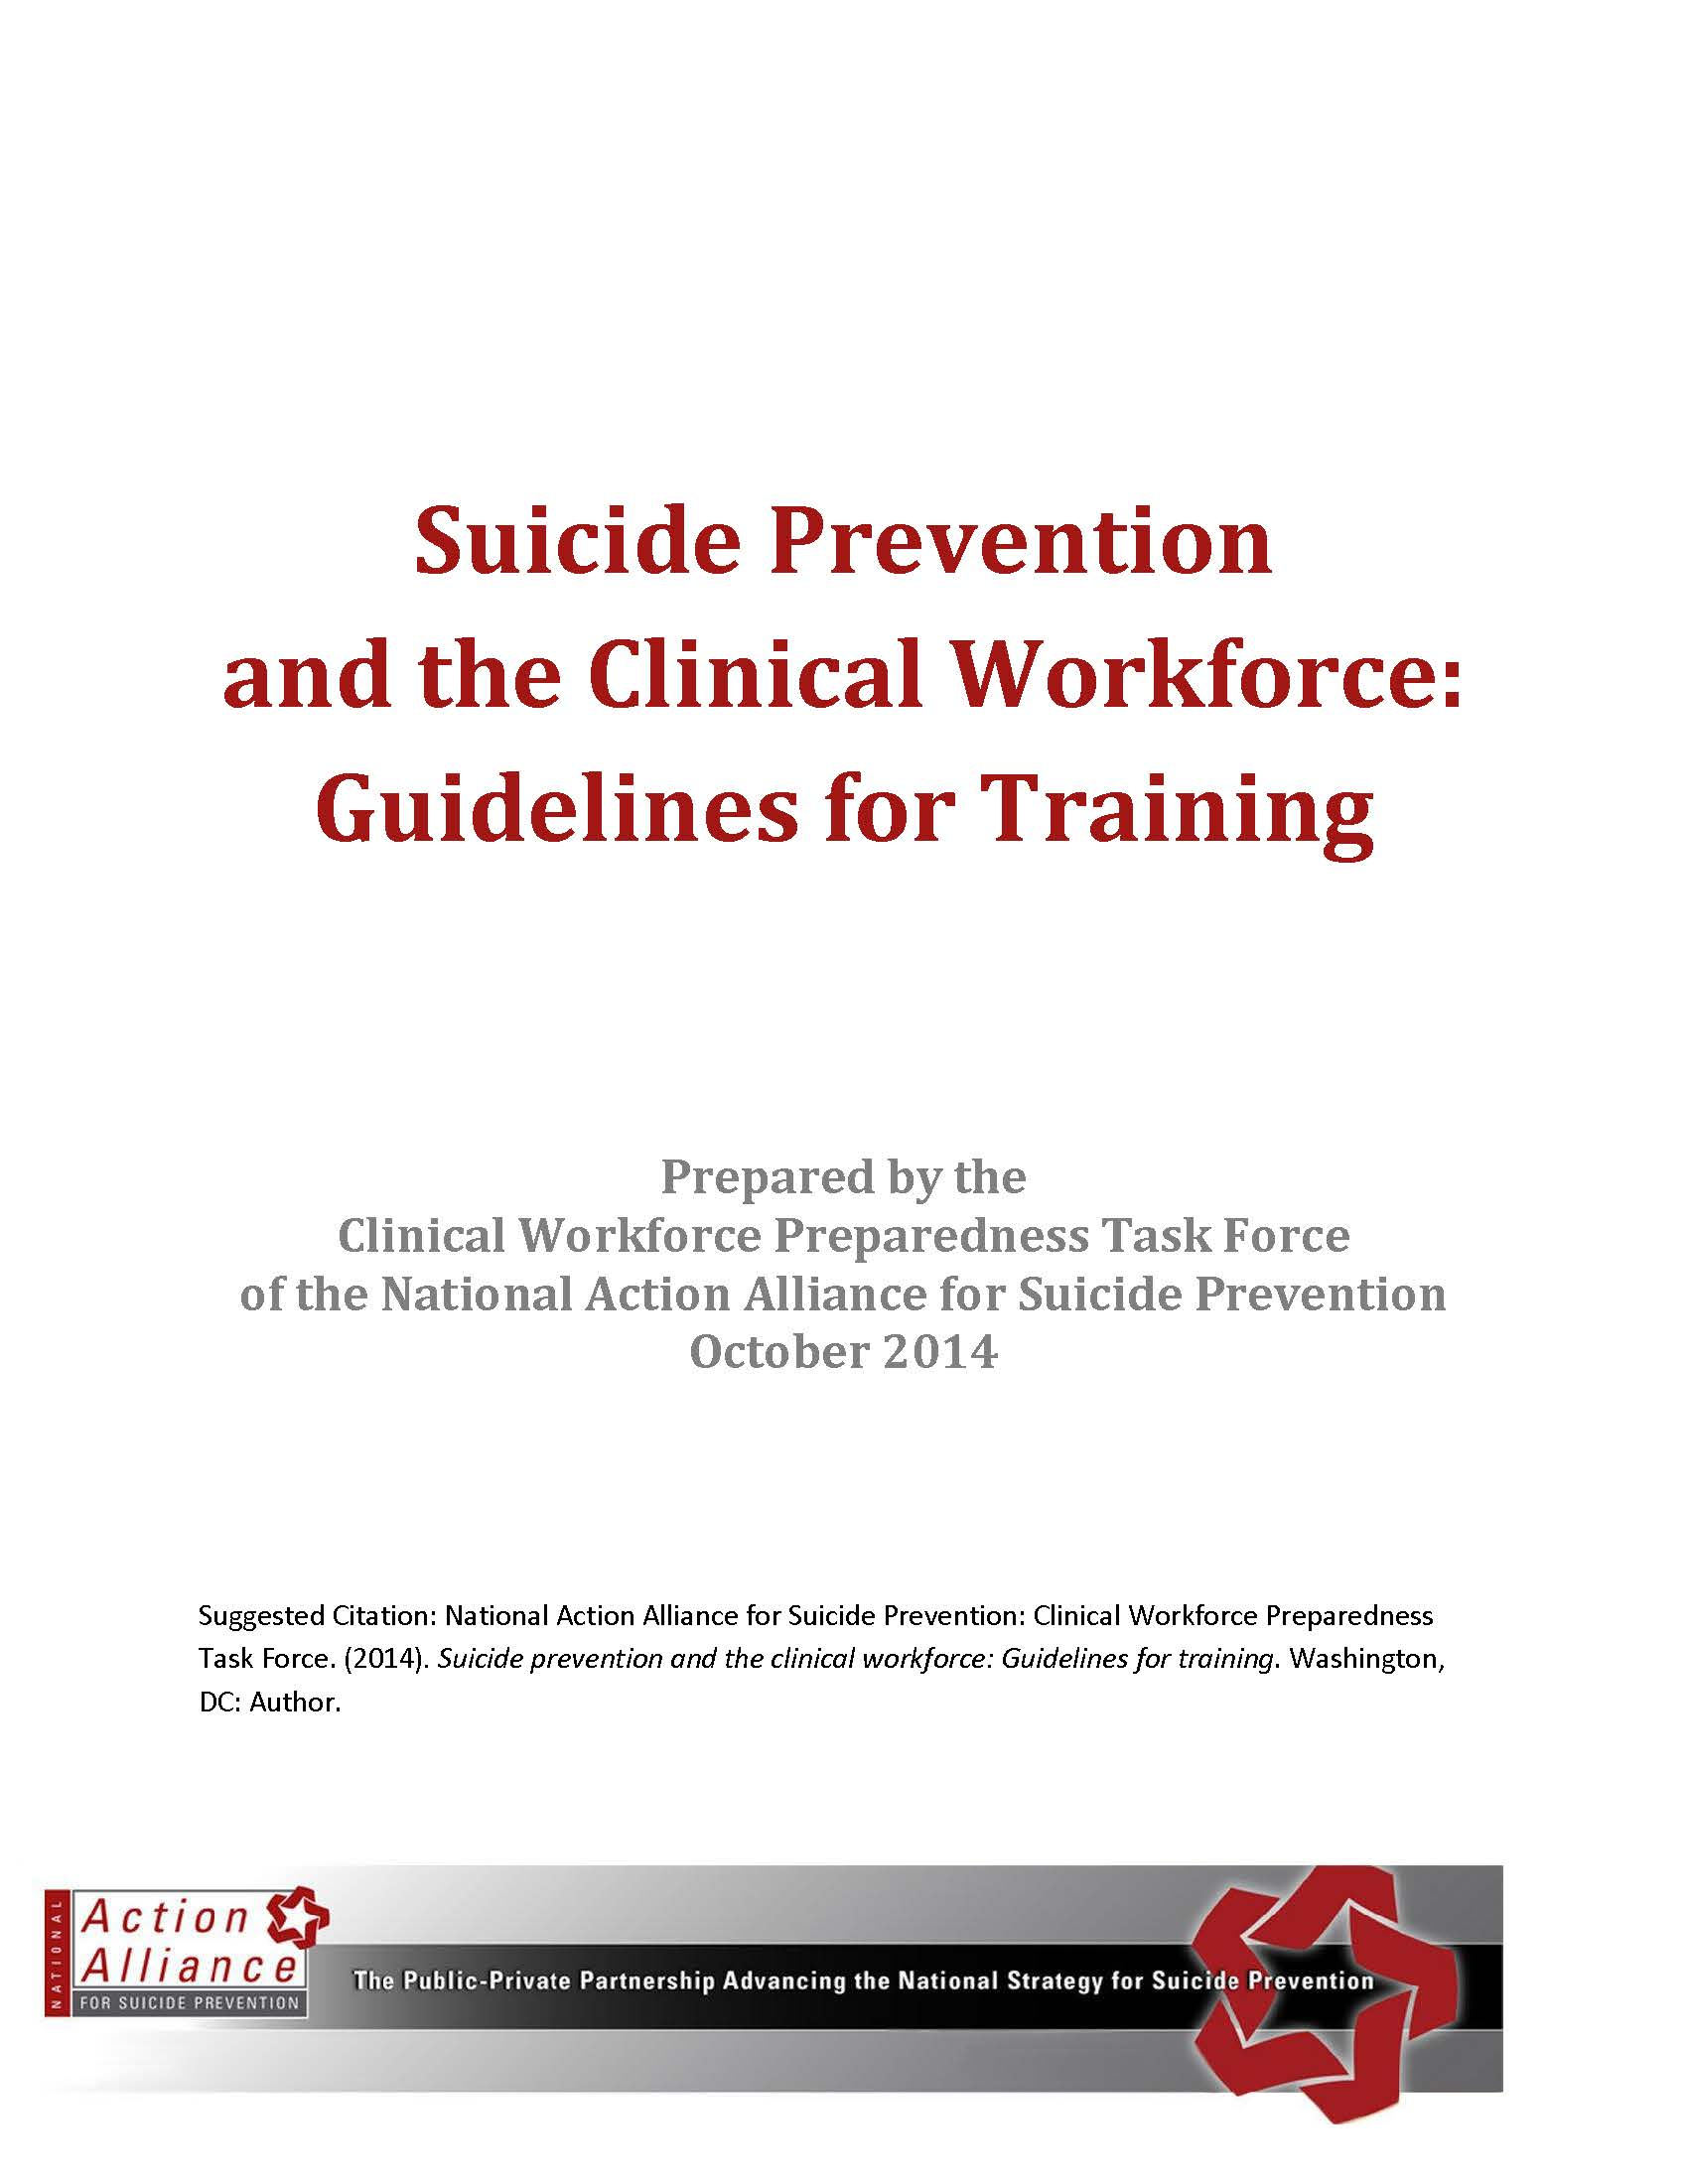 Suicide Prevention and the Clinical Workforce: Guidelines for Training